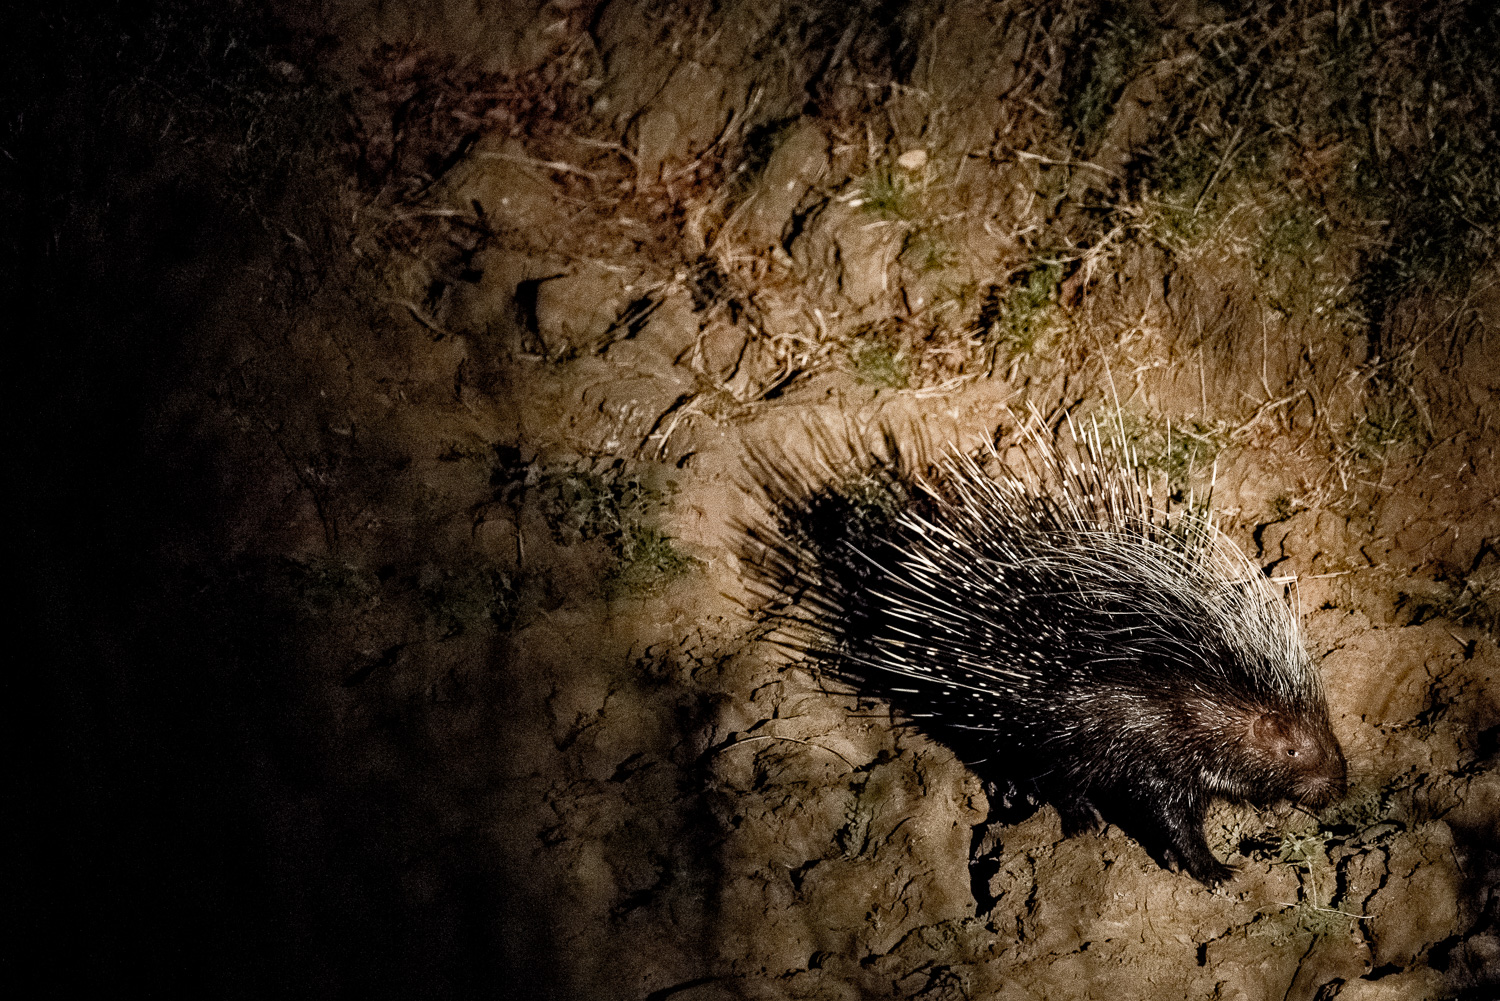 Porcupine, Bilimungwe Lodge, South Luangwa, Zambia